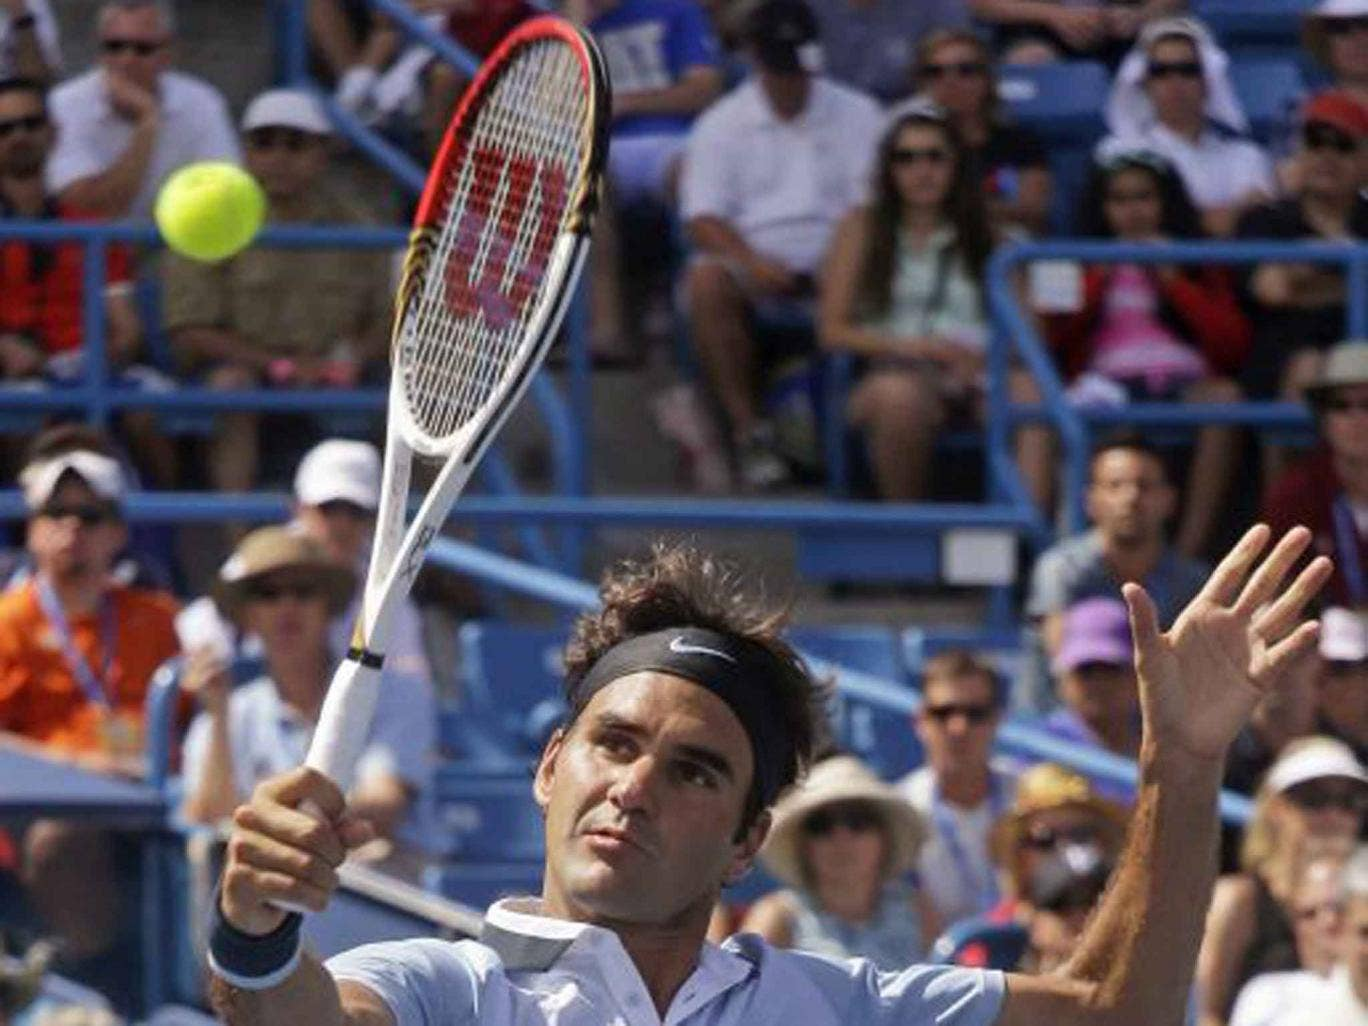 Roger Federer recovered from a slow start to beat Tommy Haas